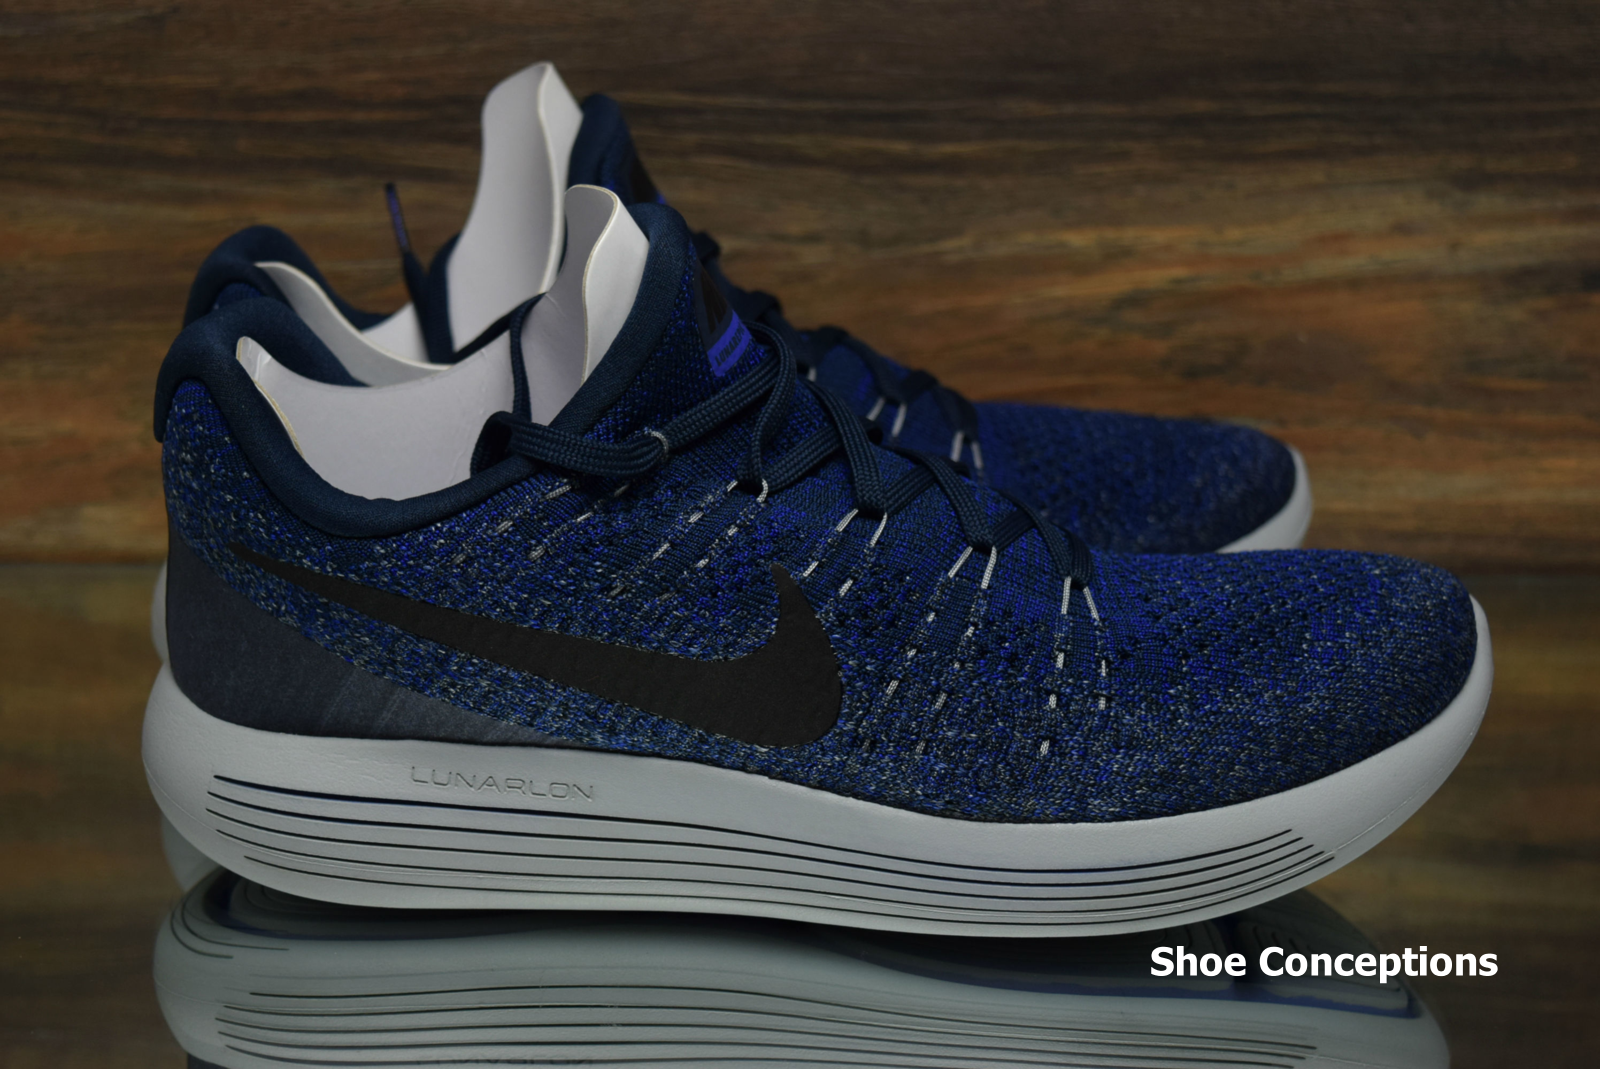 8a6d2ca4e22 Nike Lunarepic Low Flyknit 2 College Navy 863779-406 Running Shoes Mens  Multi Sz 5 5 of 8 See More